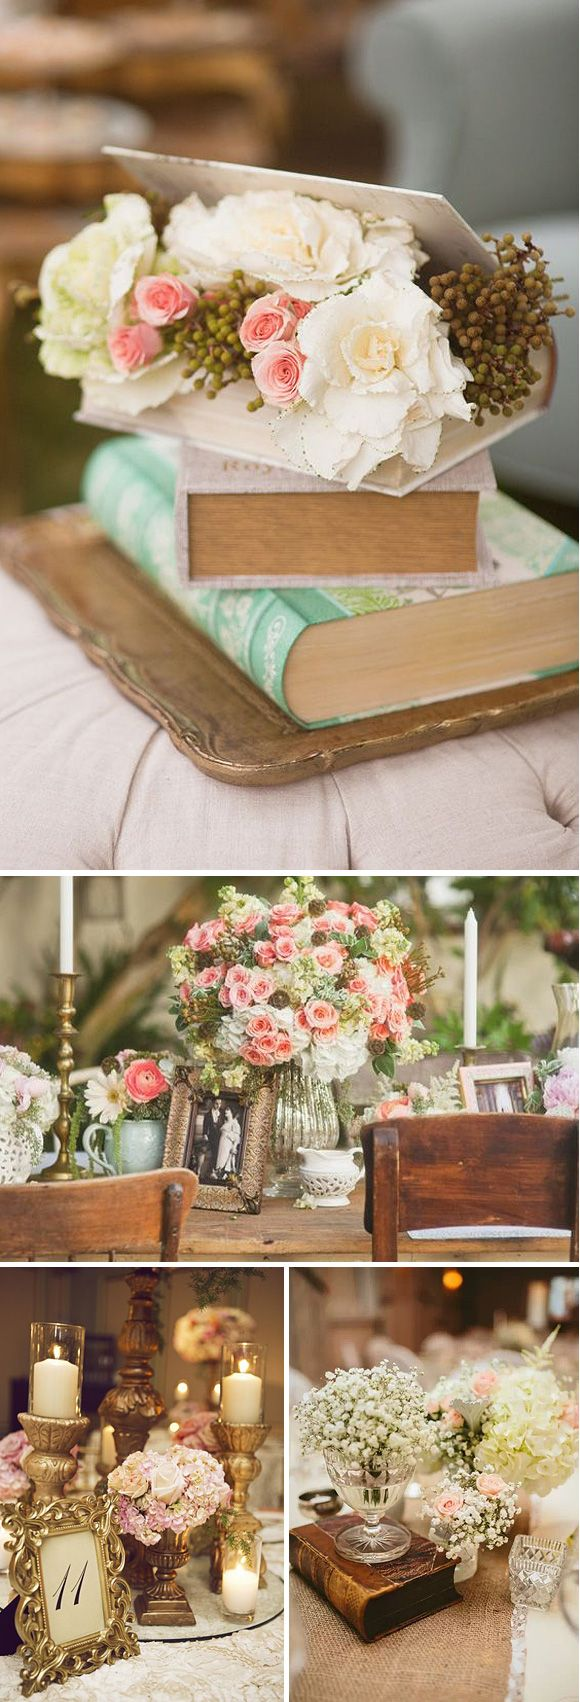 1000 images about wedding decor ideas on pinterest - Ideas para decorar fiestas ...